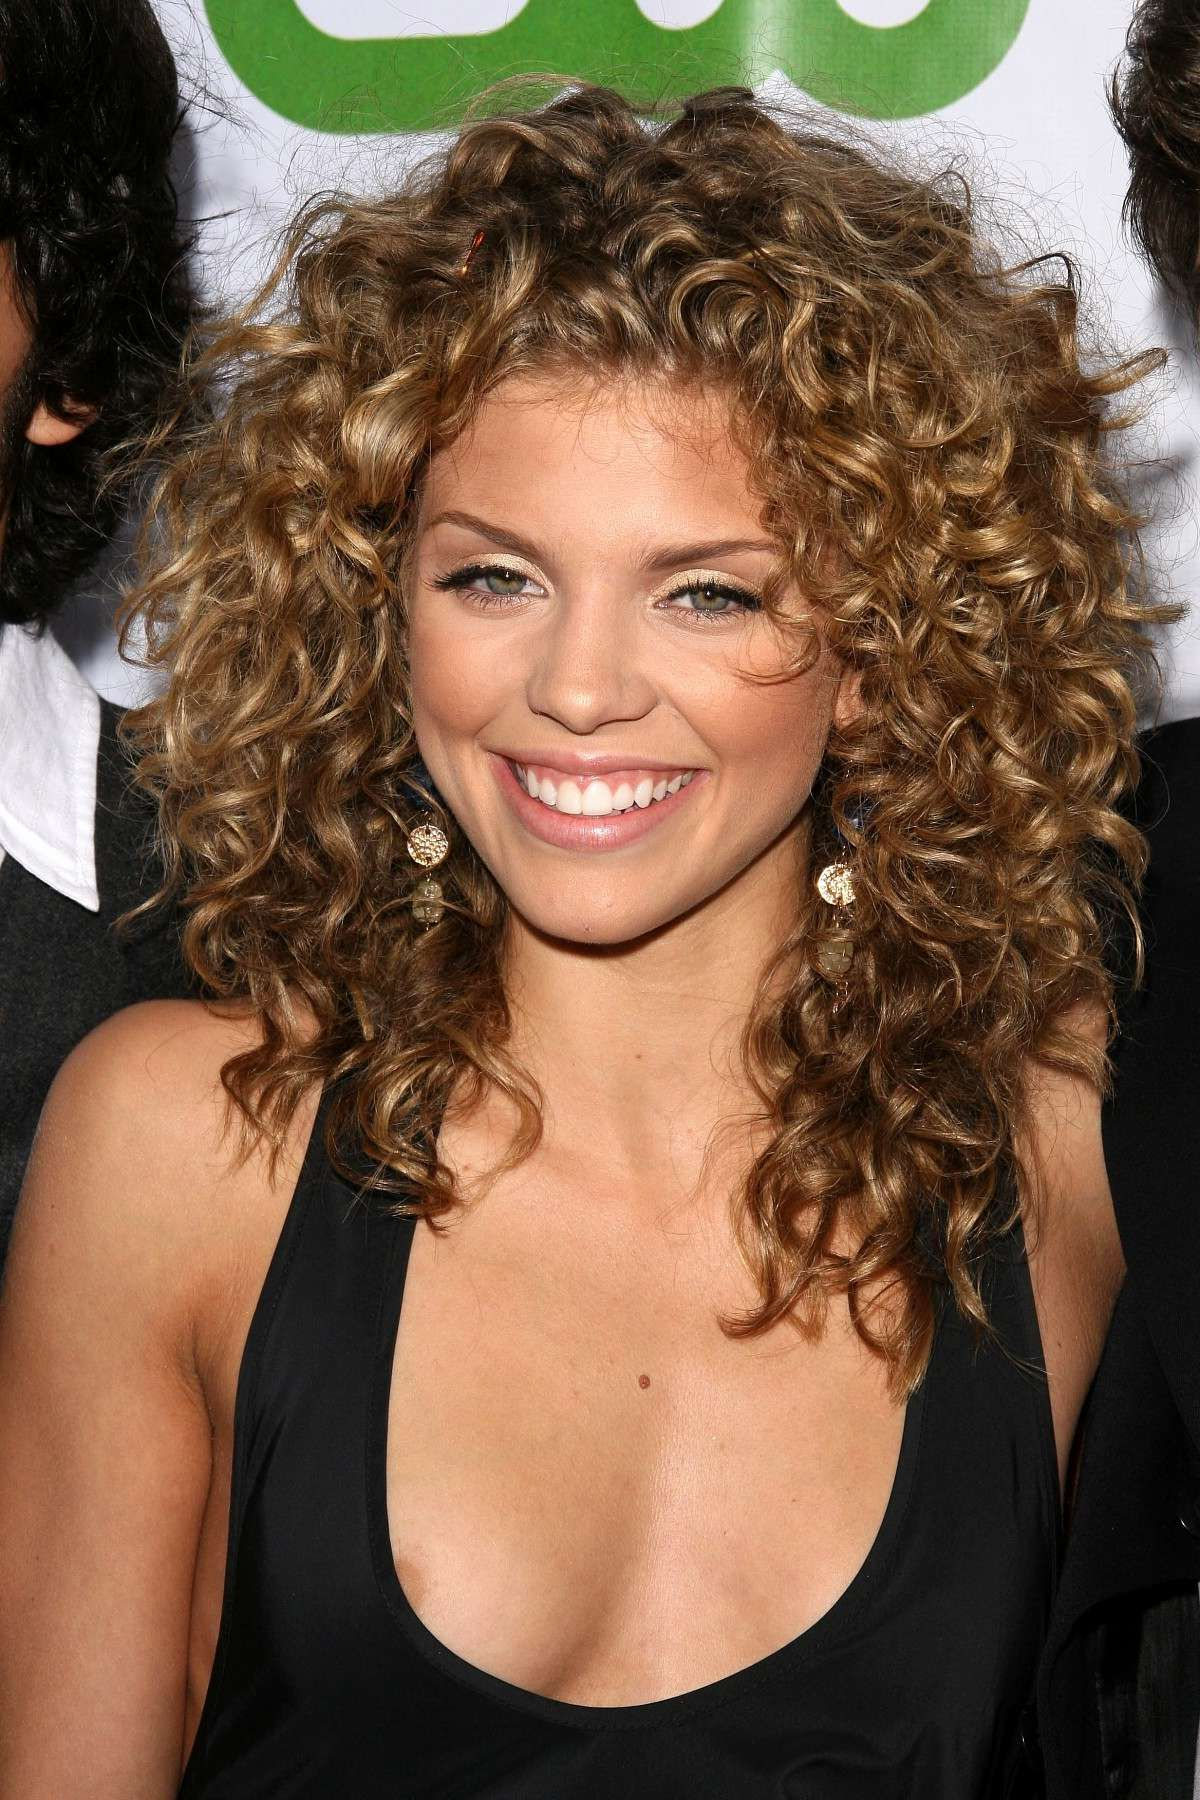 Hairstyles For Curly Hair Diamond Face Shape Fresh Beautiful Natural Inside Widely Used Naturally Curly Medium Hairstyles (View 12 of 20)